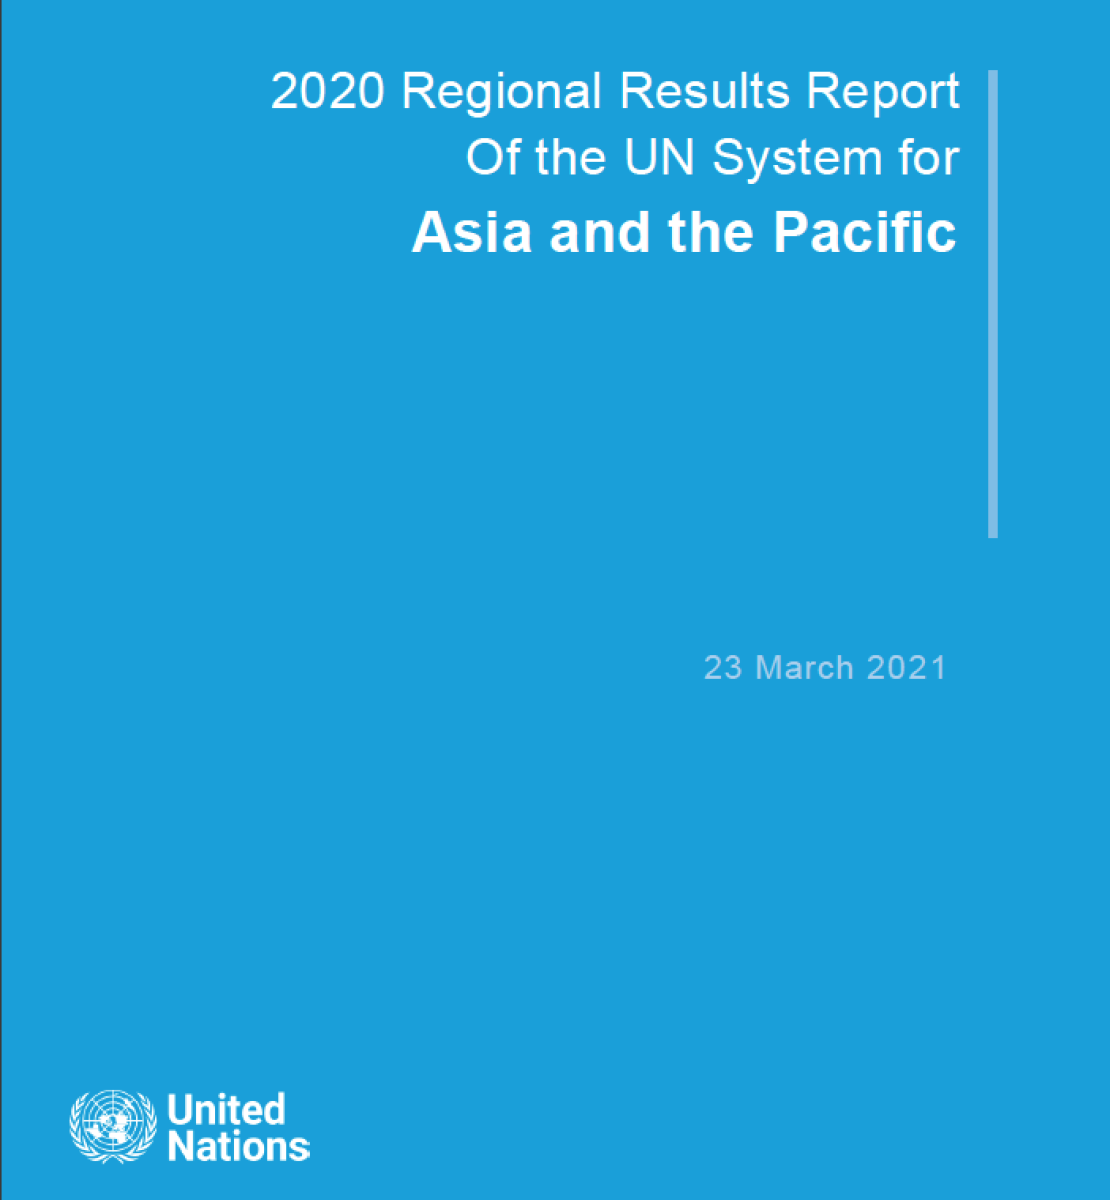 Blue cover shows the title in white letters at the top right and the UN emblem on the bottom left.